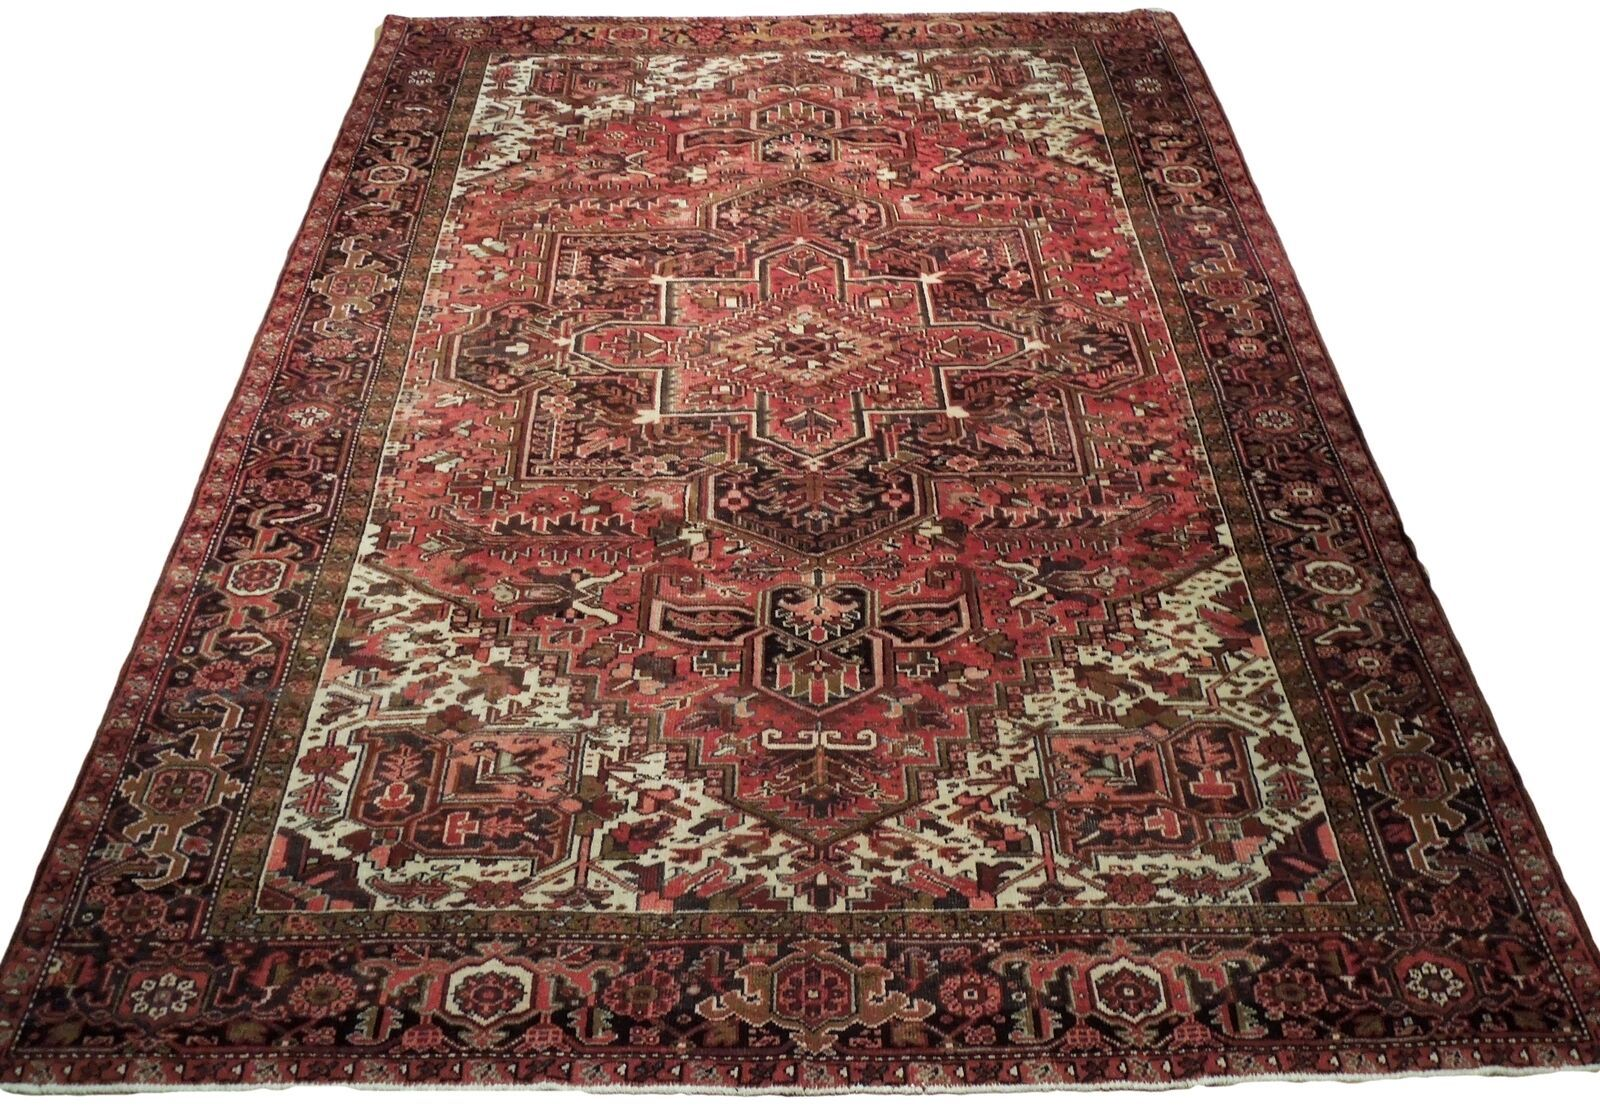 Large Centerpiece Medallion Persian Handmade 9 x 13 Pink Heriz Wool Rug